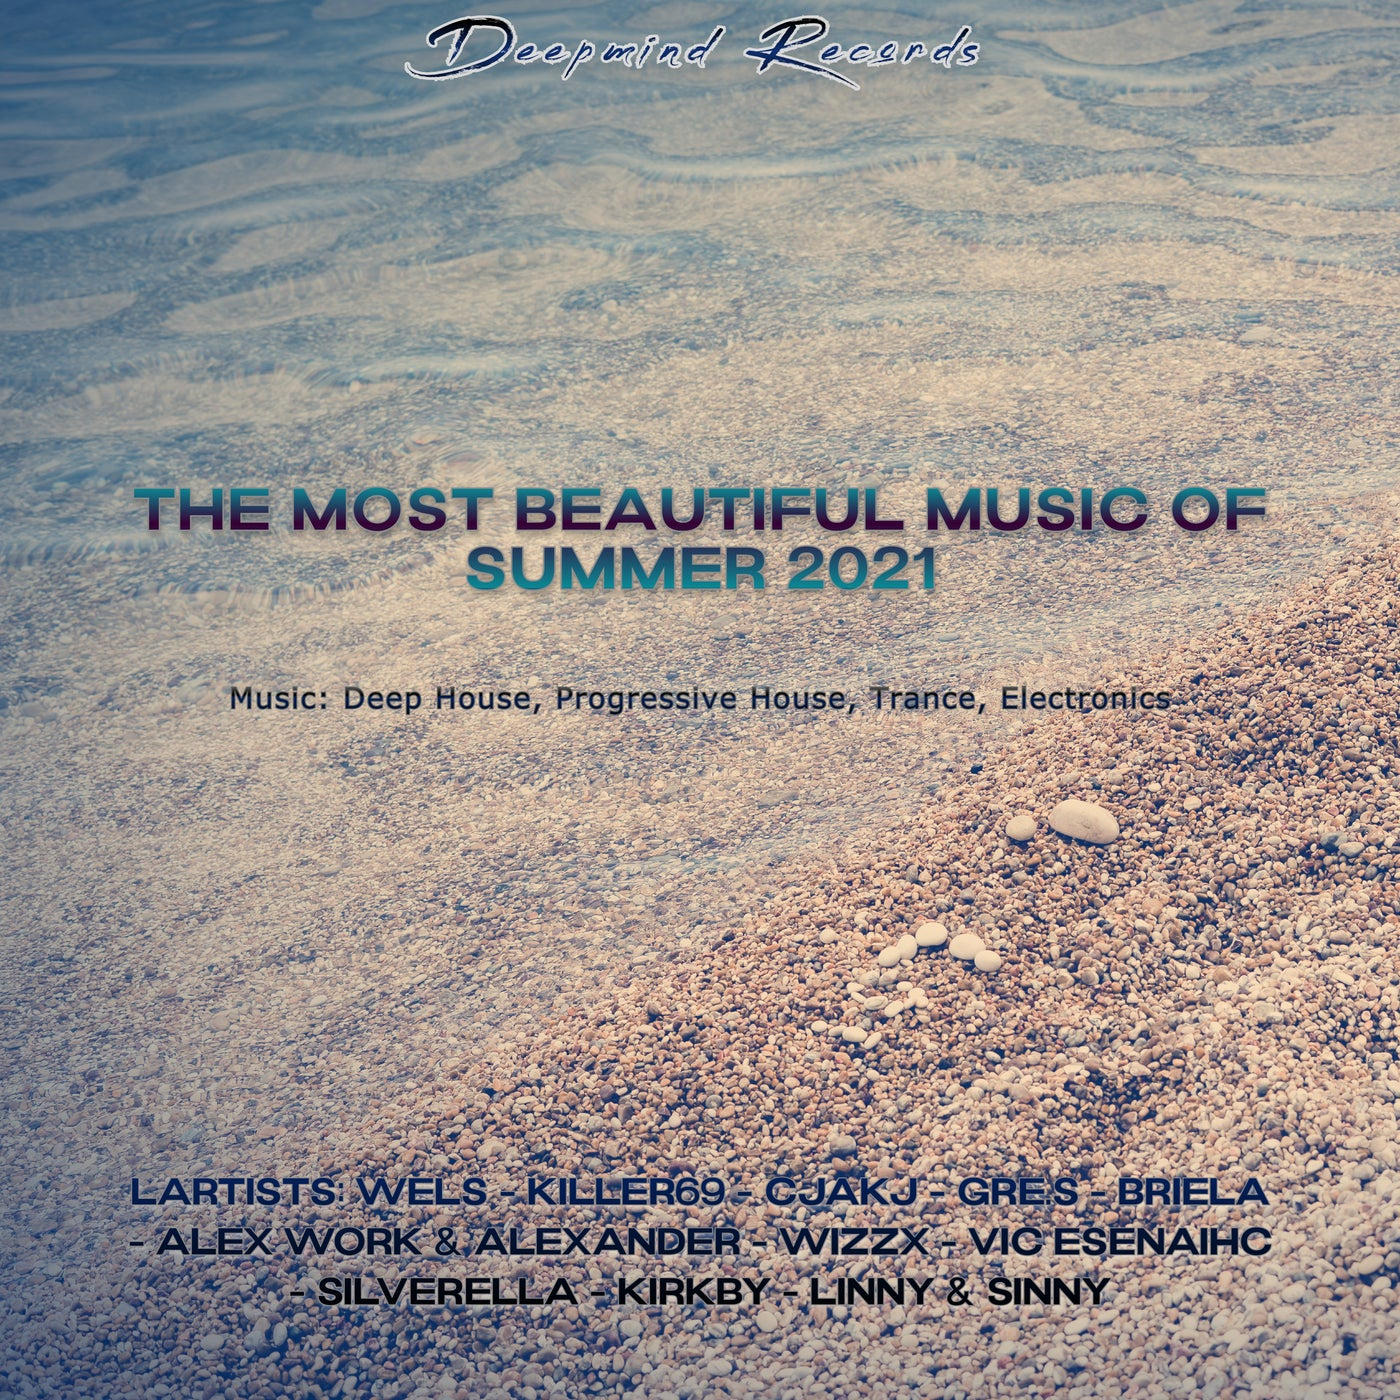 Various Performers - The Most Beautiful Music of Summer 2021 (2021)